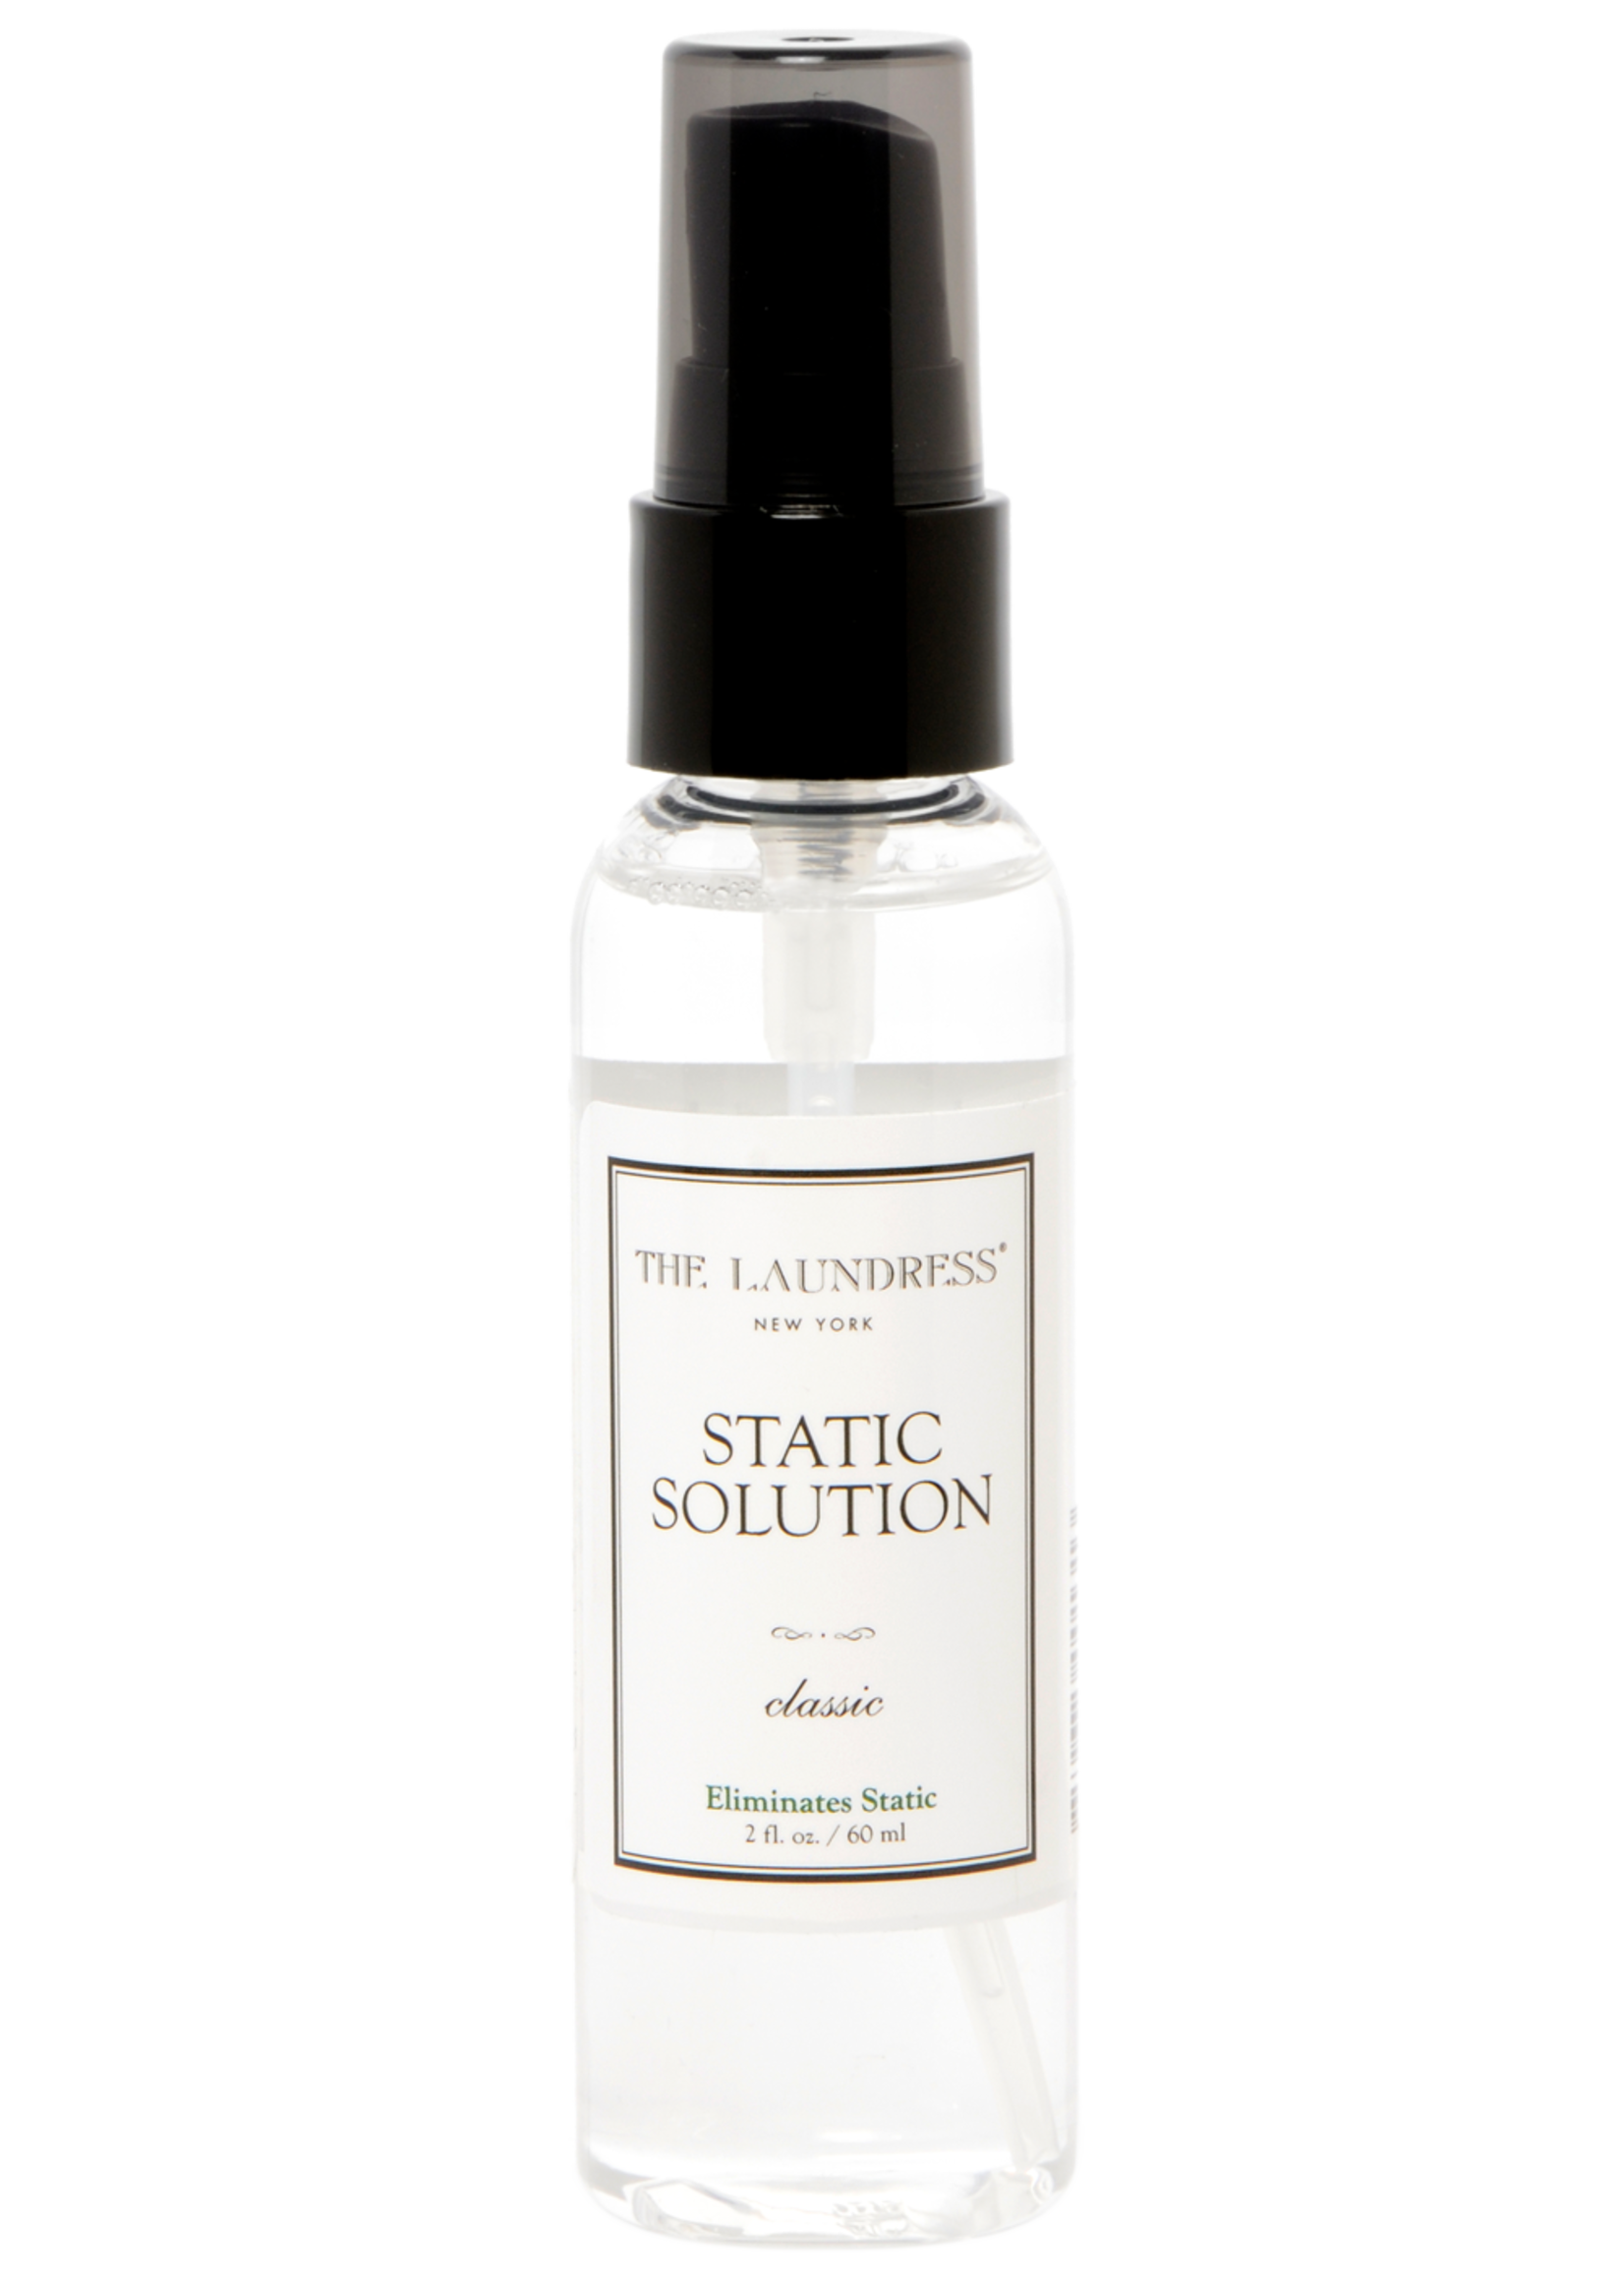 The Laundress New York Static Solution